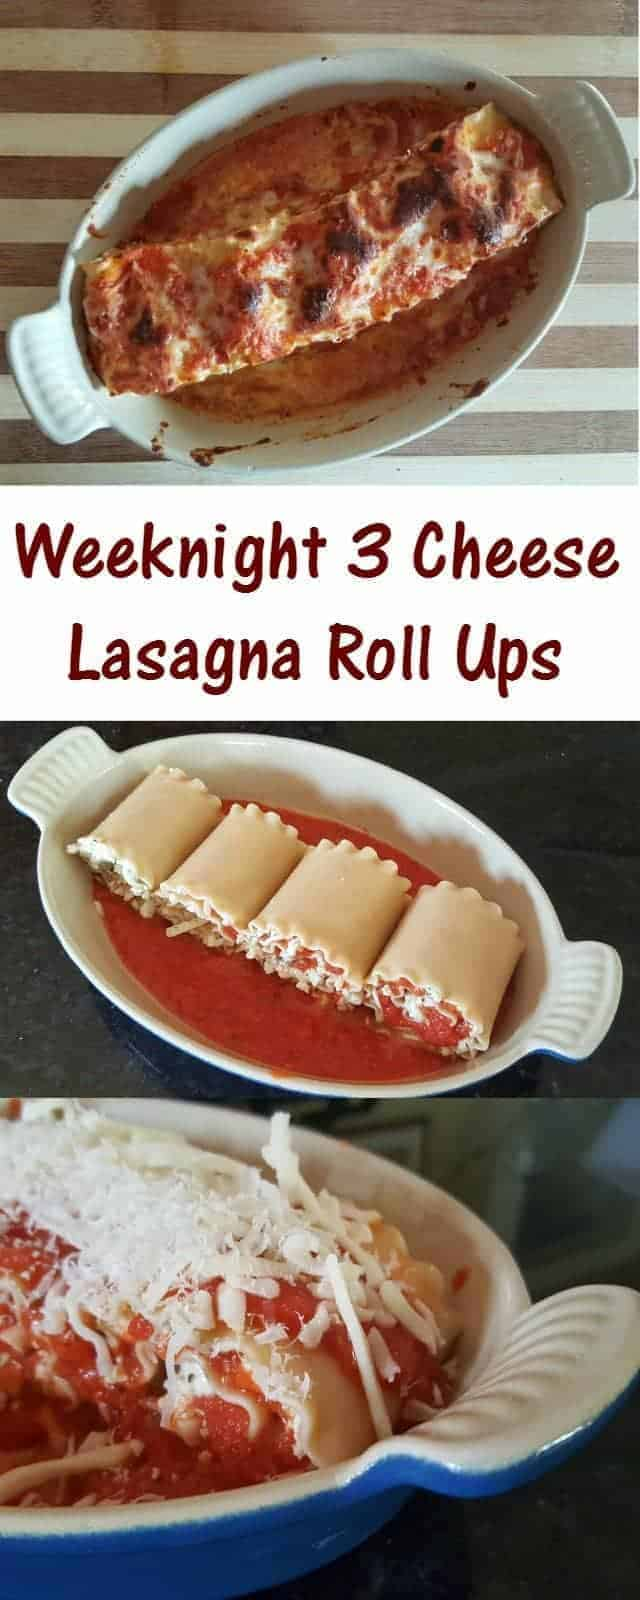 Weeknight 3 cheese lasagna roll ups recipe for a delicious and easy Italian dinner. Prep it ahead for busy nights, and have perfect portion control with leftovers